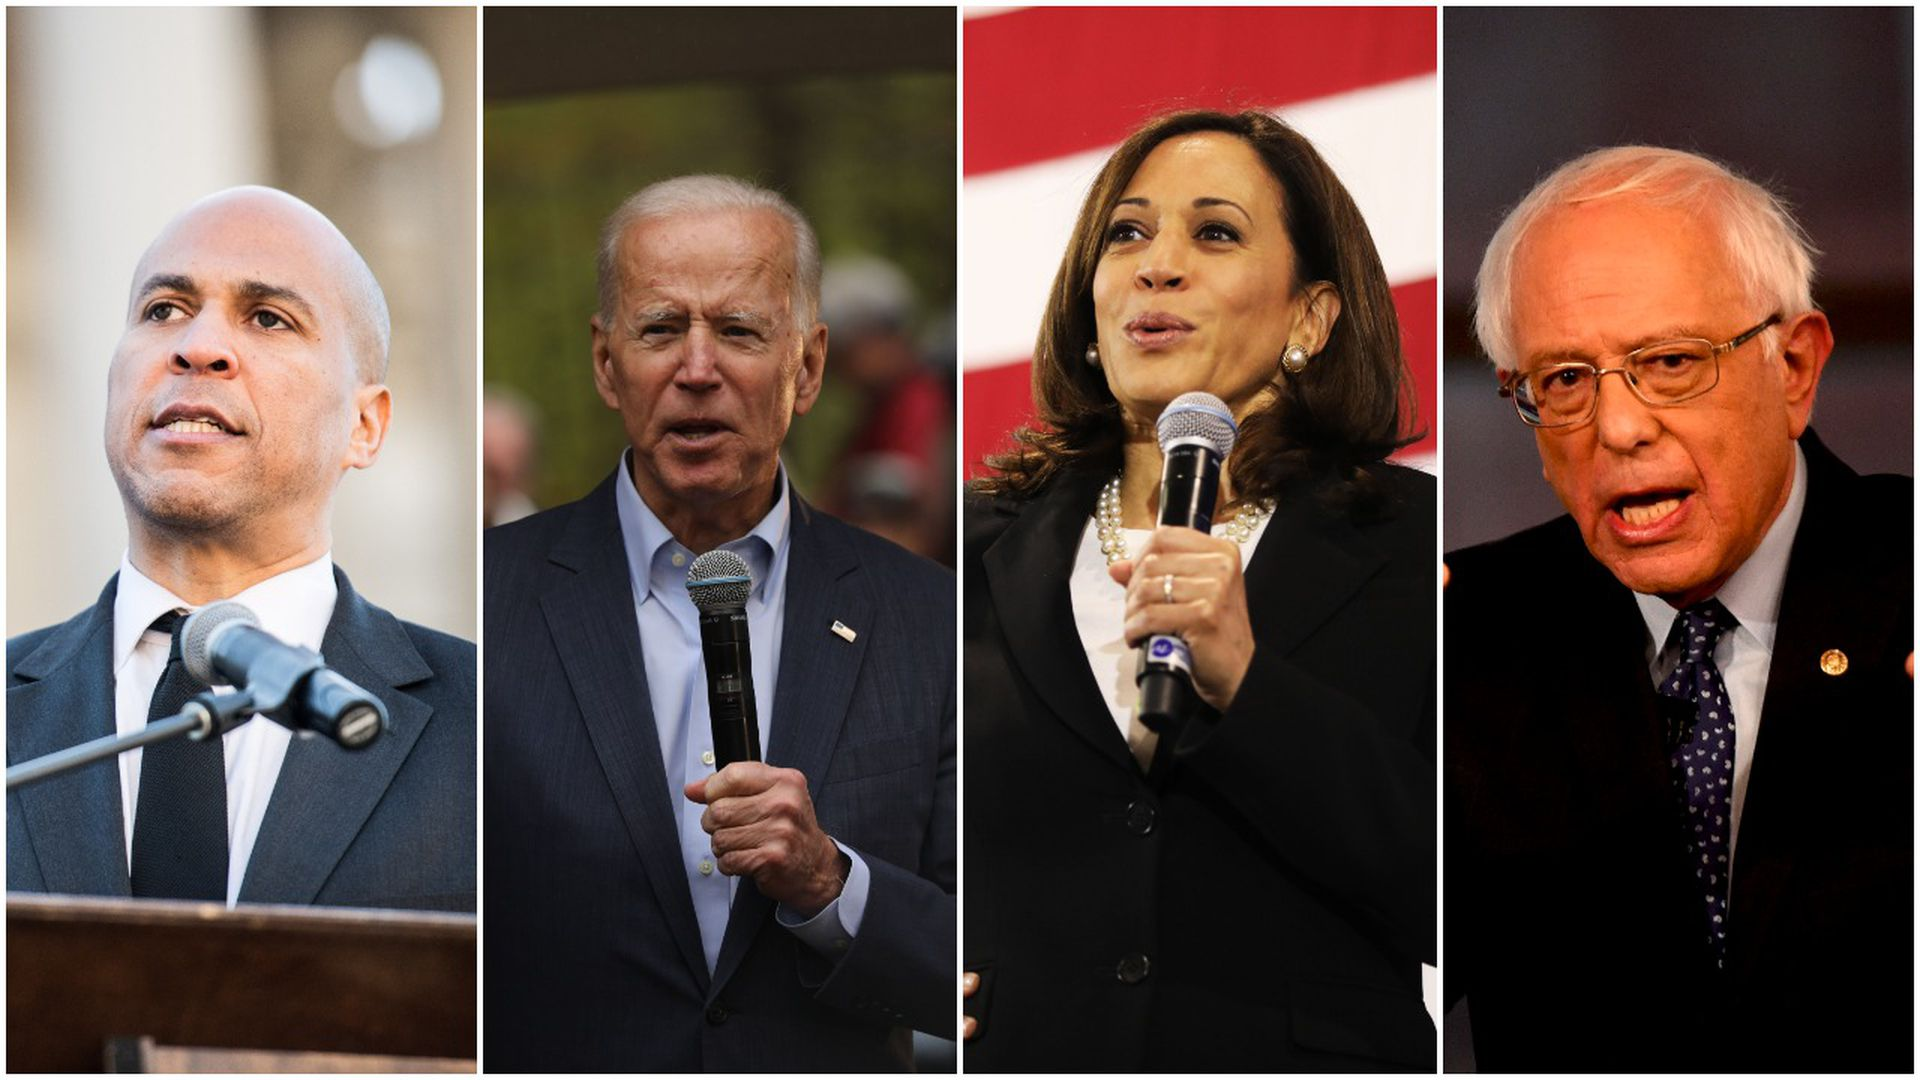 This image is a four-way split screen showing candidates in the following orders: Booker, Harris, Biden, and Sanders.